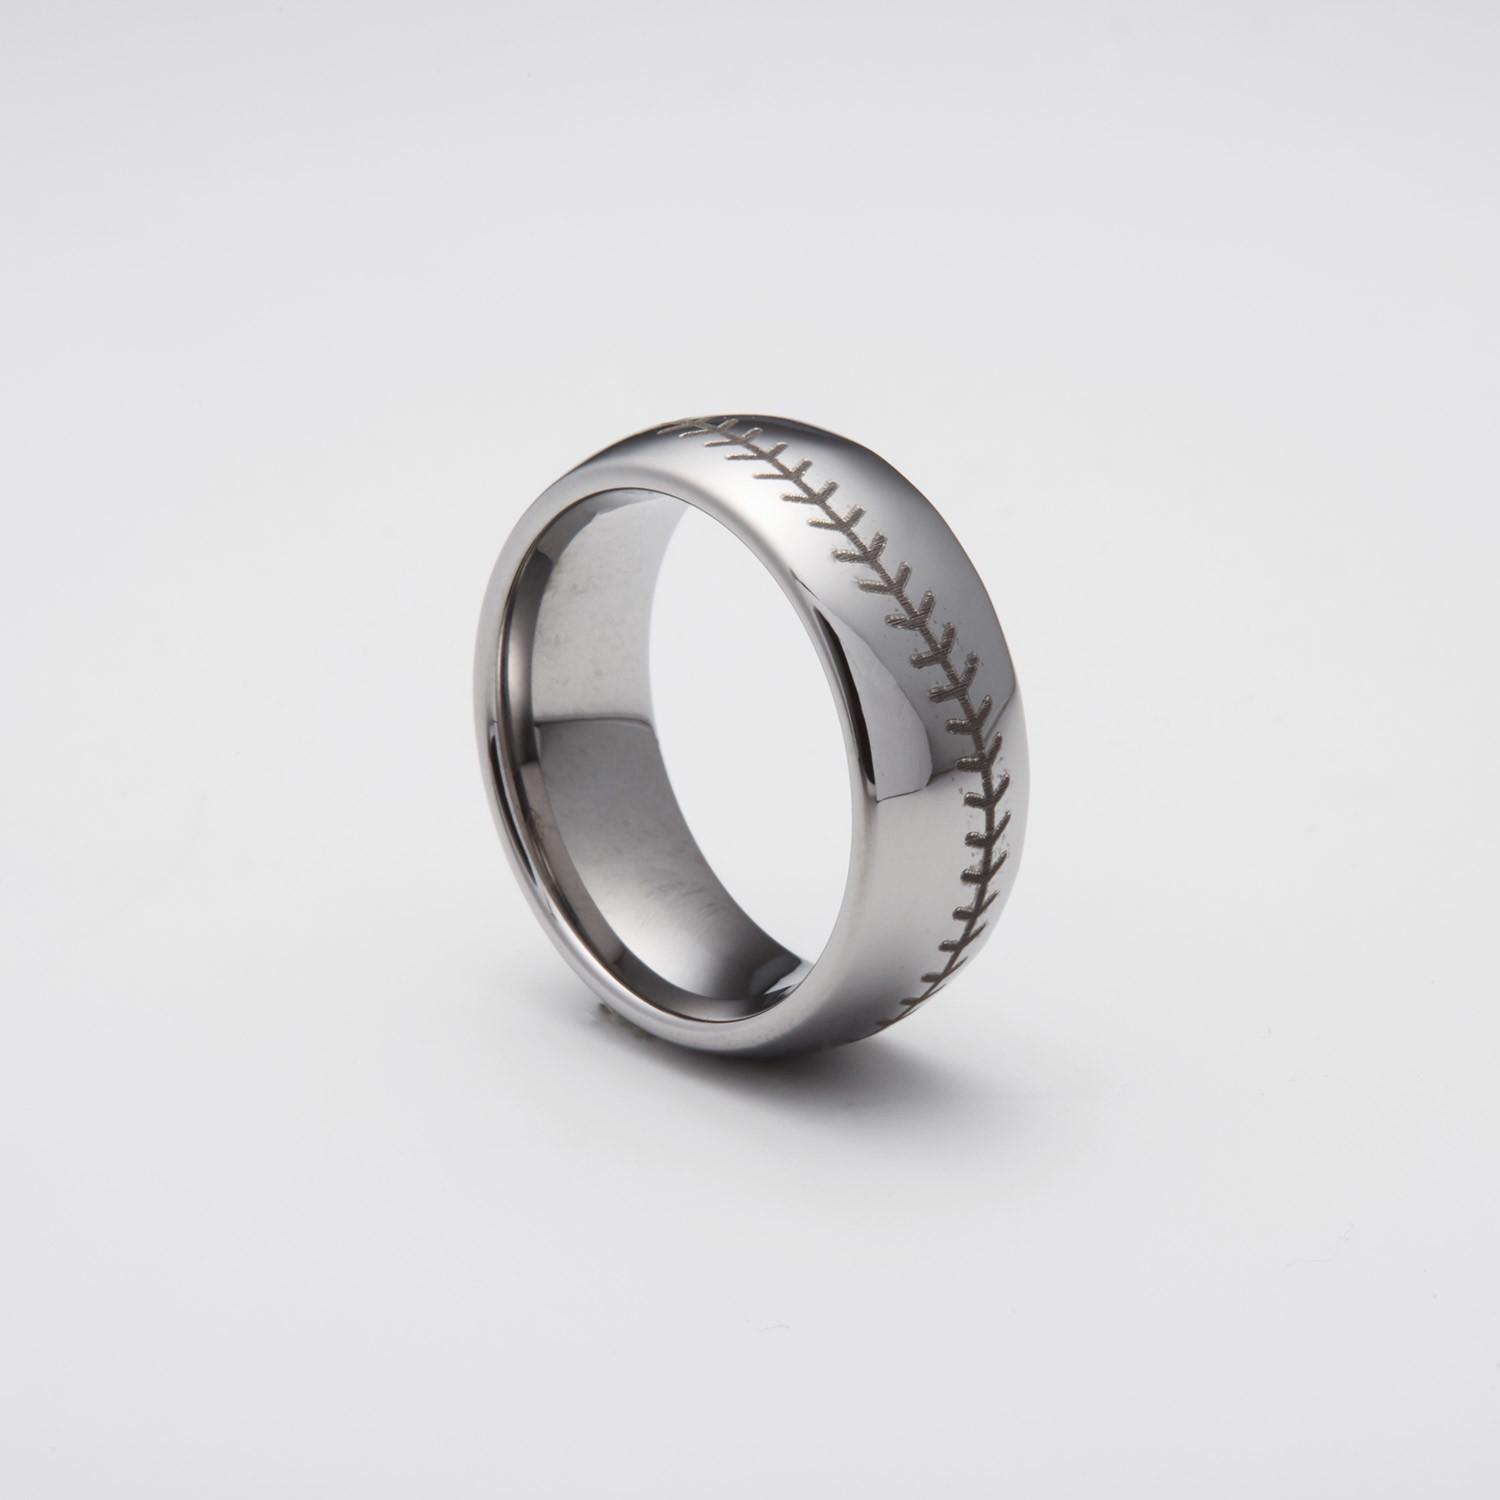 Engraved Tungsten Carbide Ring Baseball Stitched Size 8